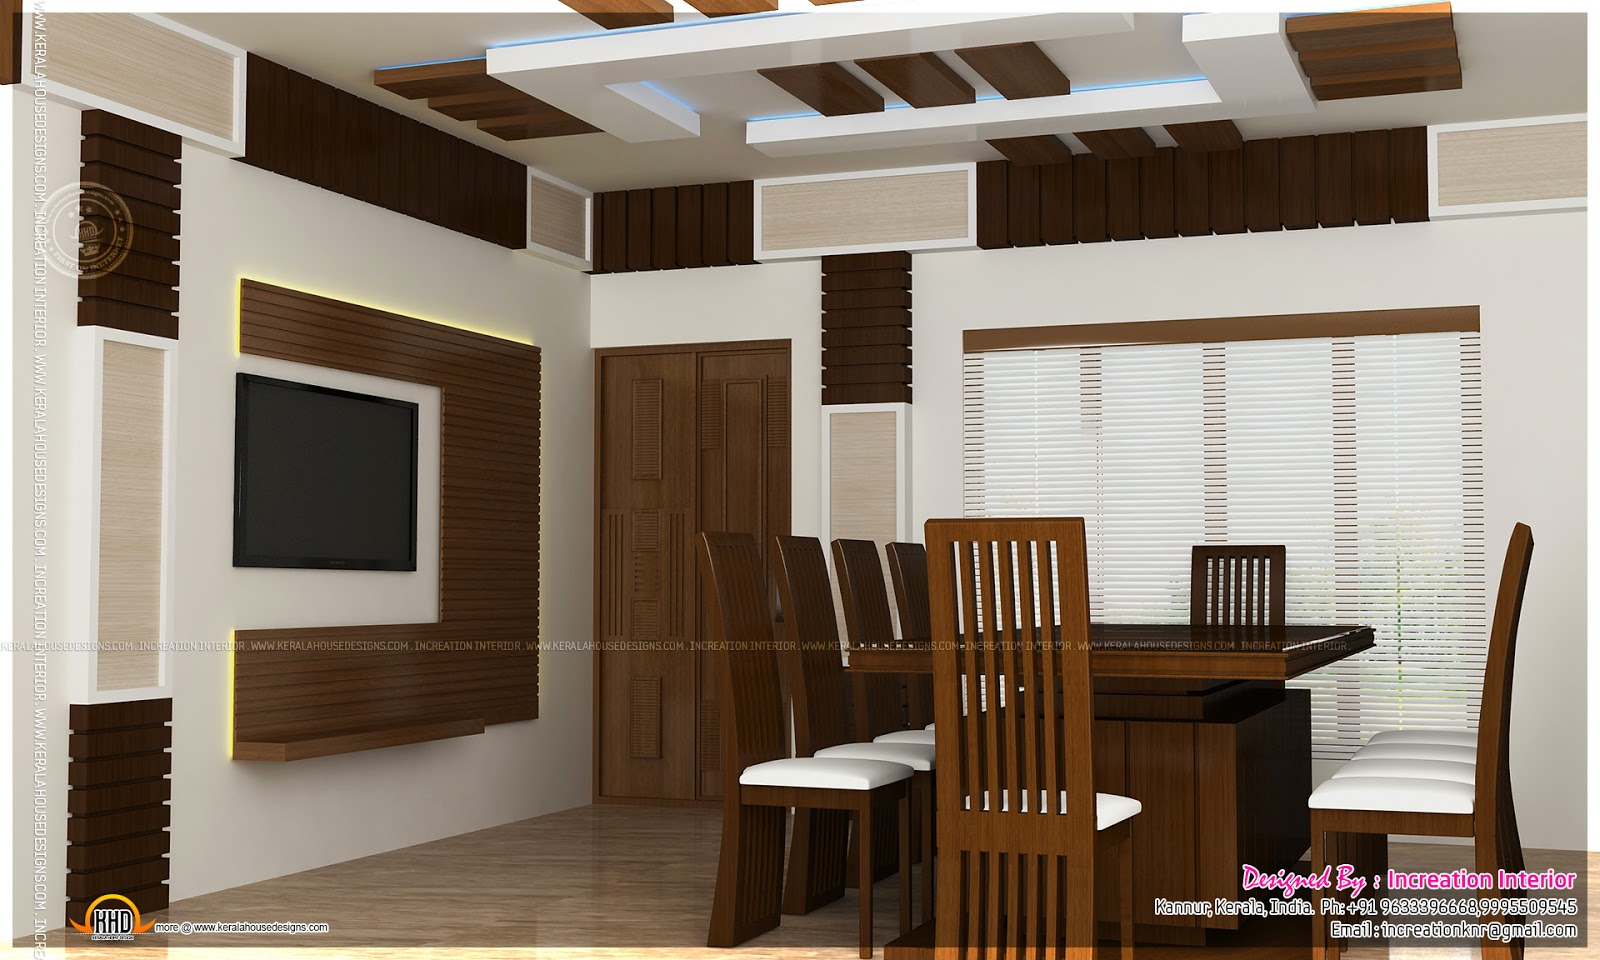 Interior design ideas by increation interior kerala indian house plans Interior design ideas for kerala houses